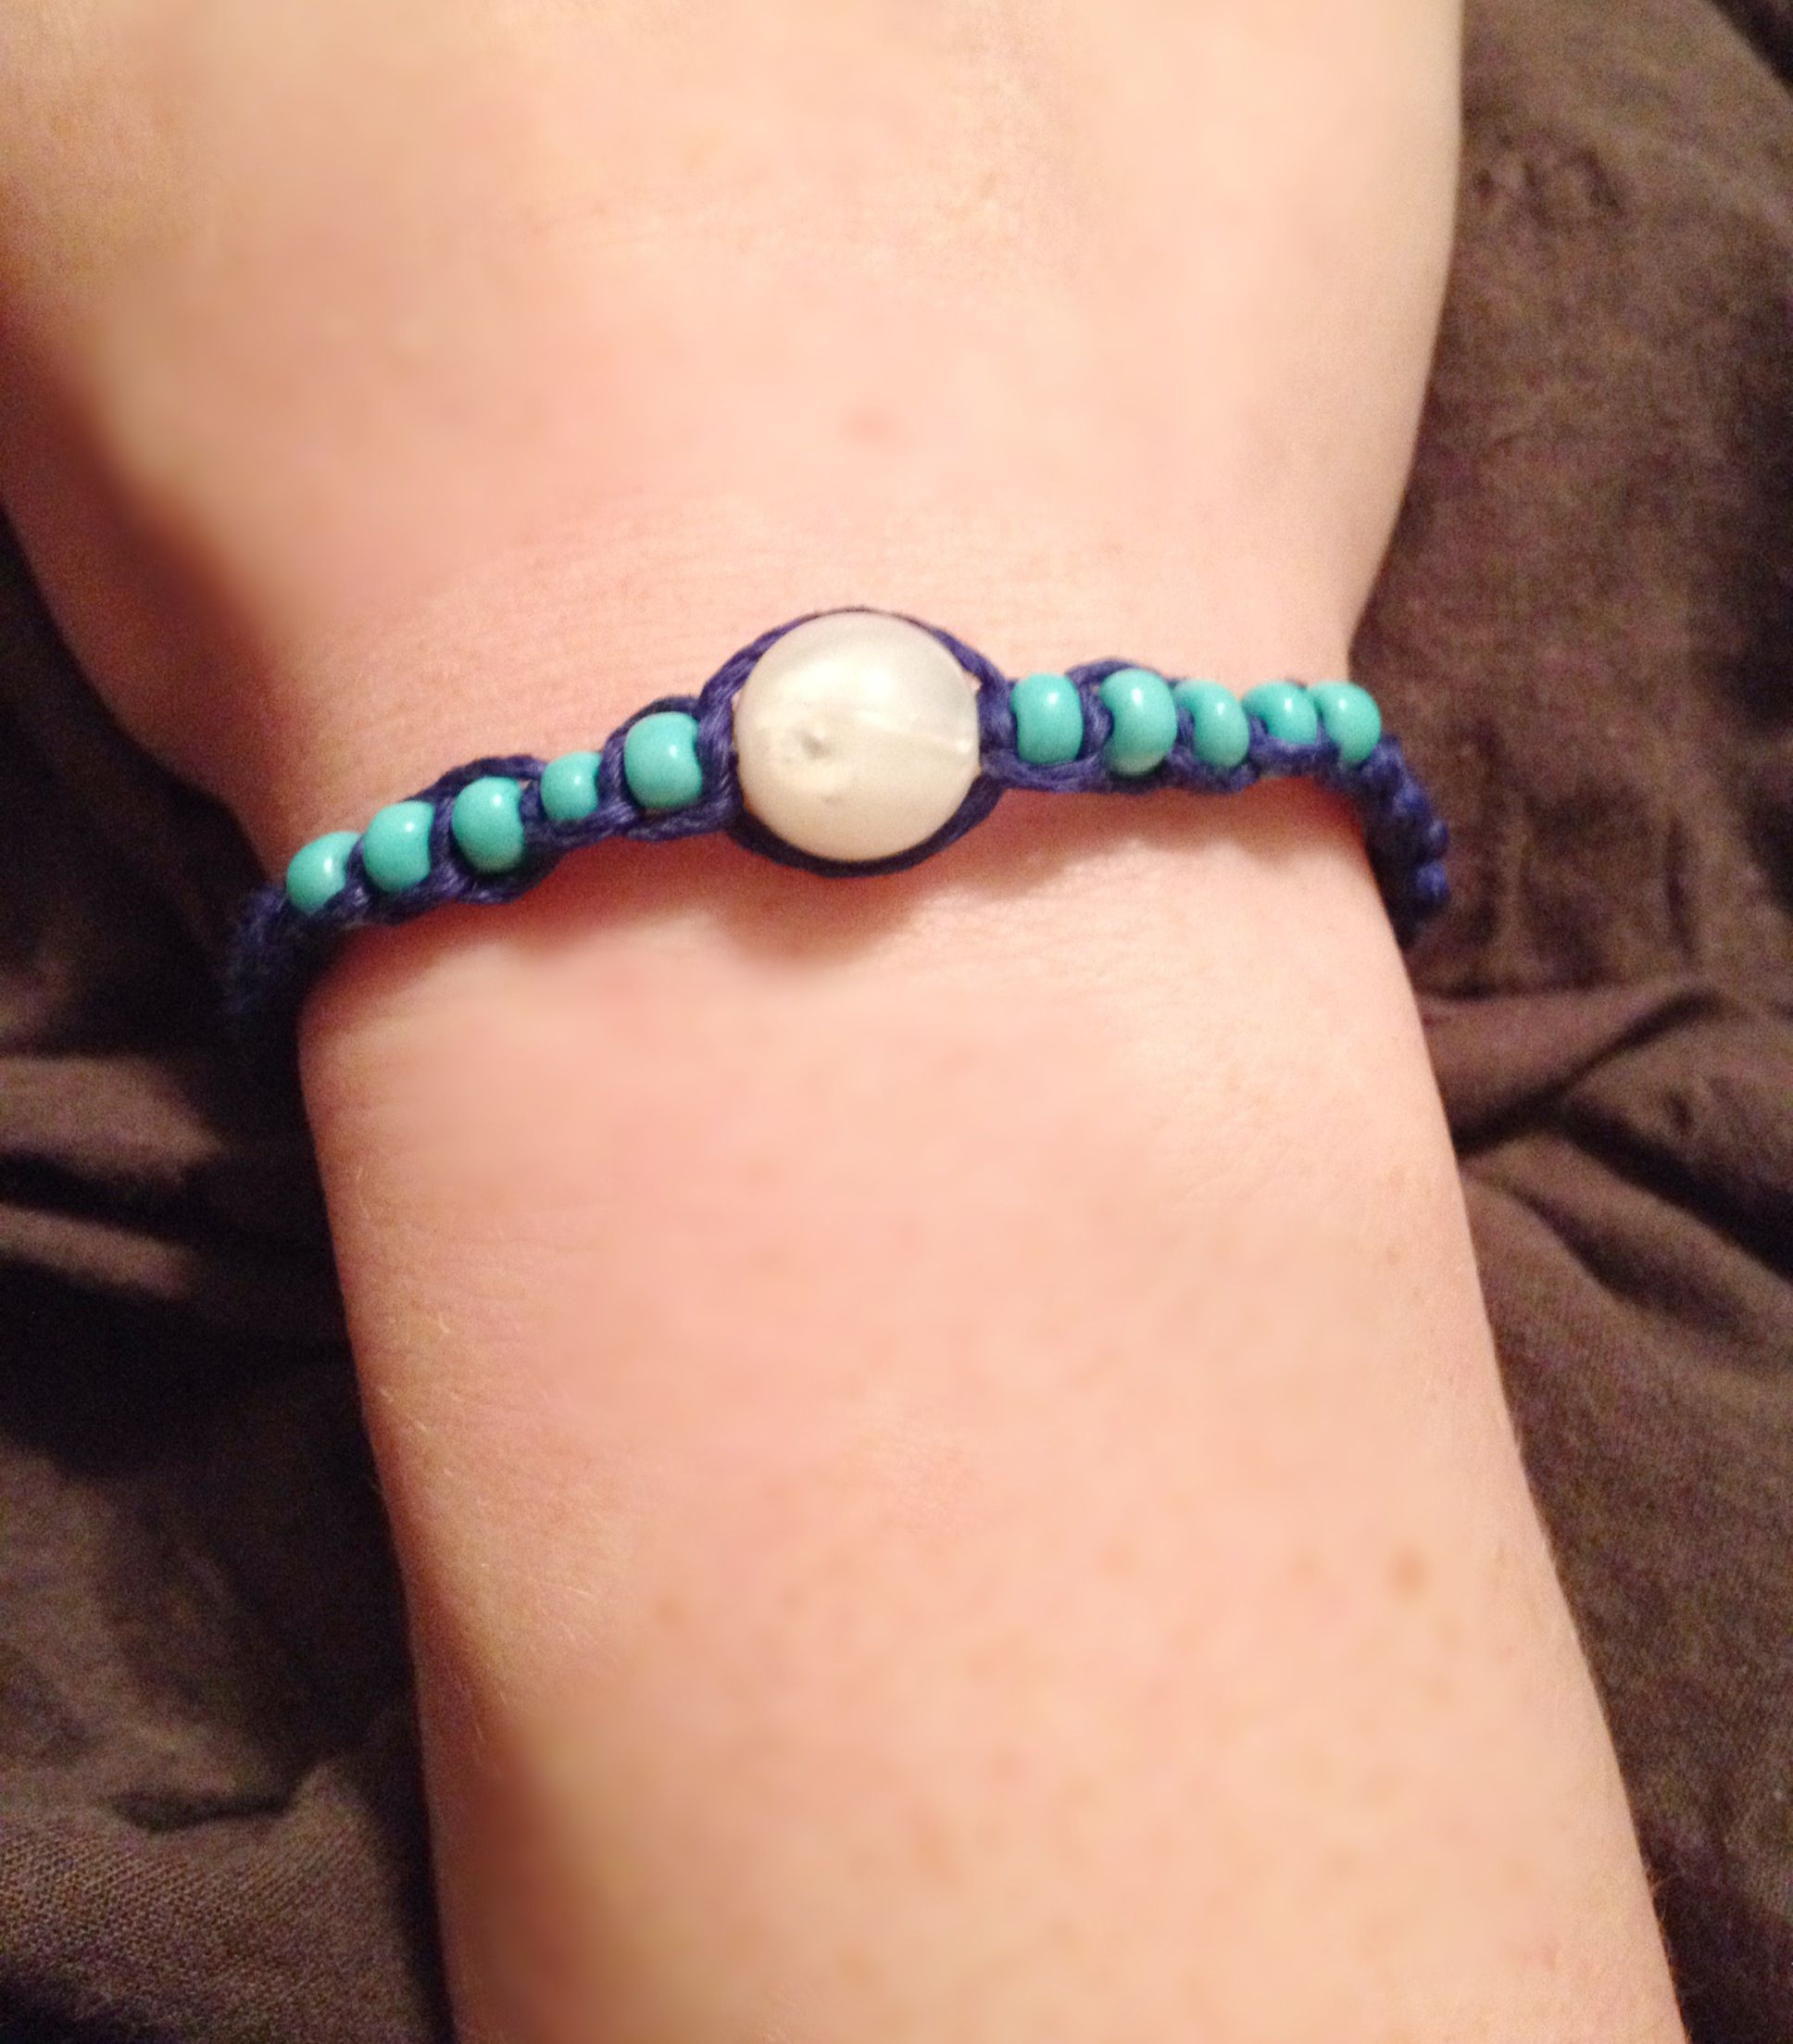 The bracelet project. Blue for depression, teal for anxiety, and white for recovery. Mental health awareness.